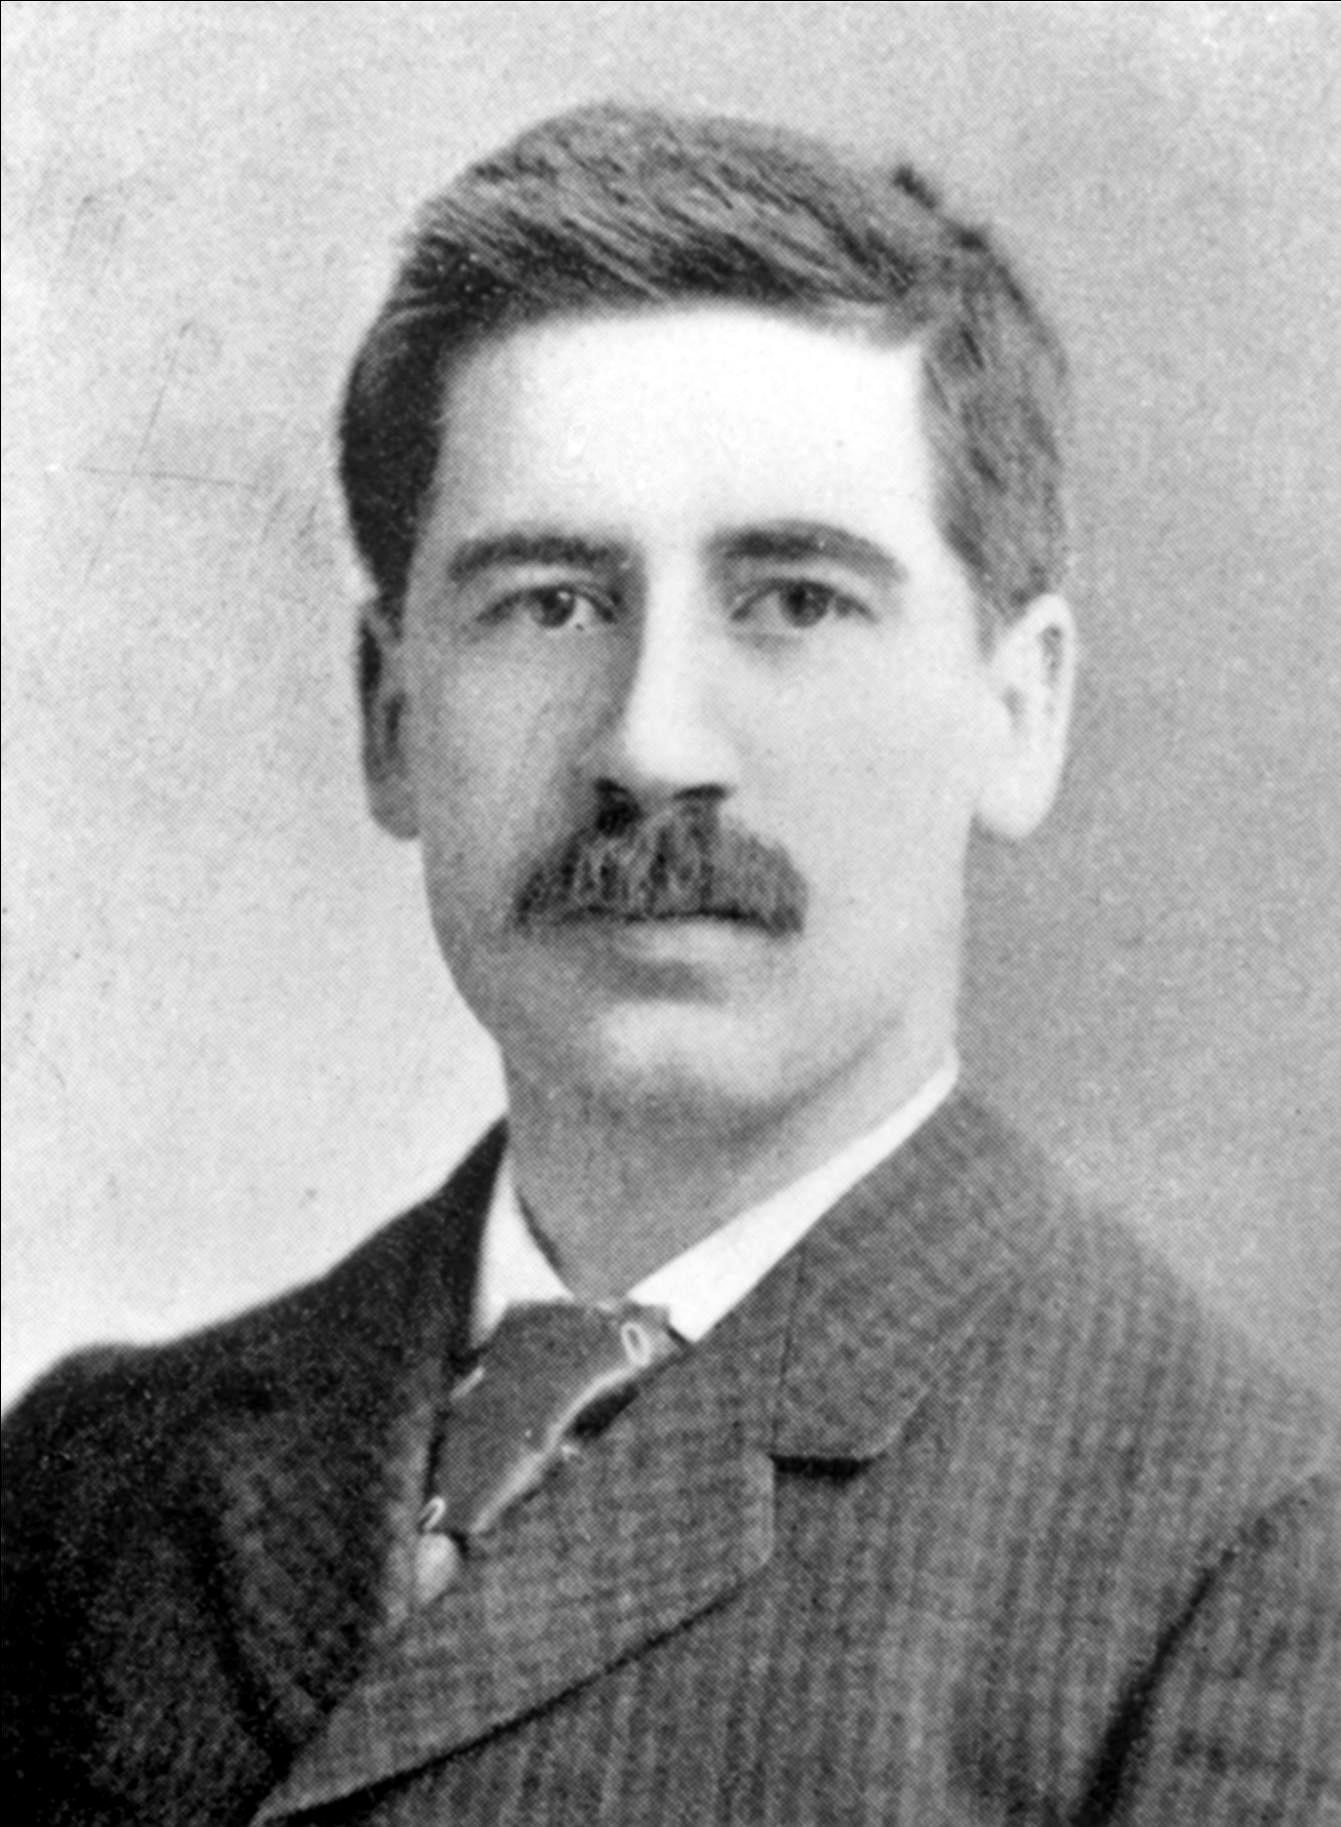 Cheyney as a young professor at the University of Pennsylvania